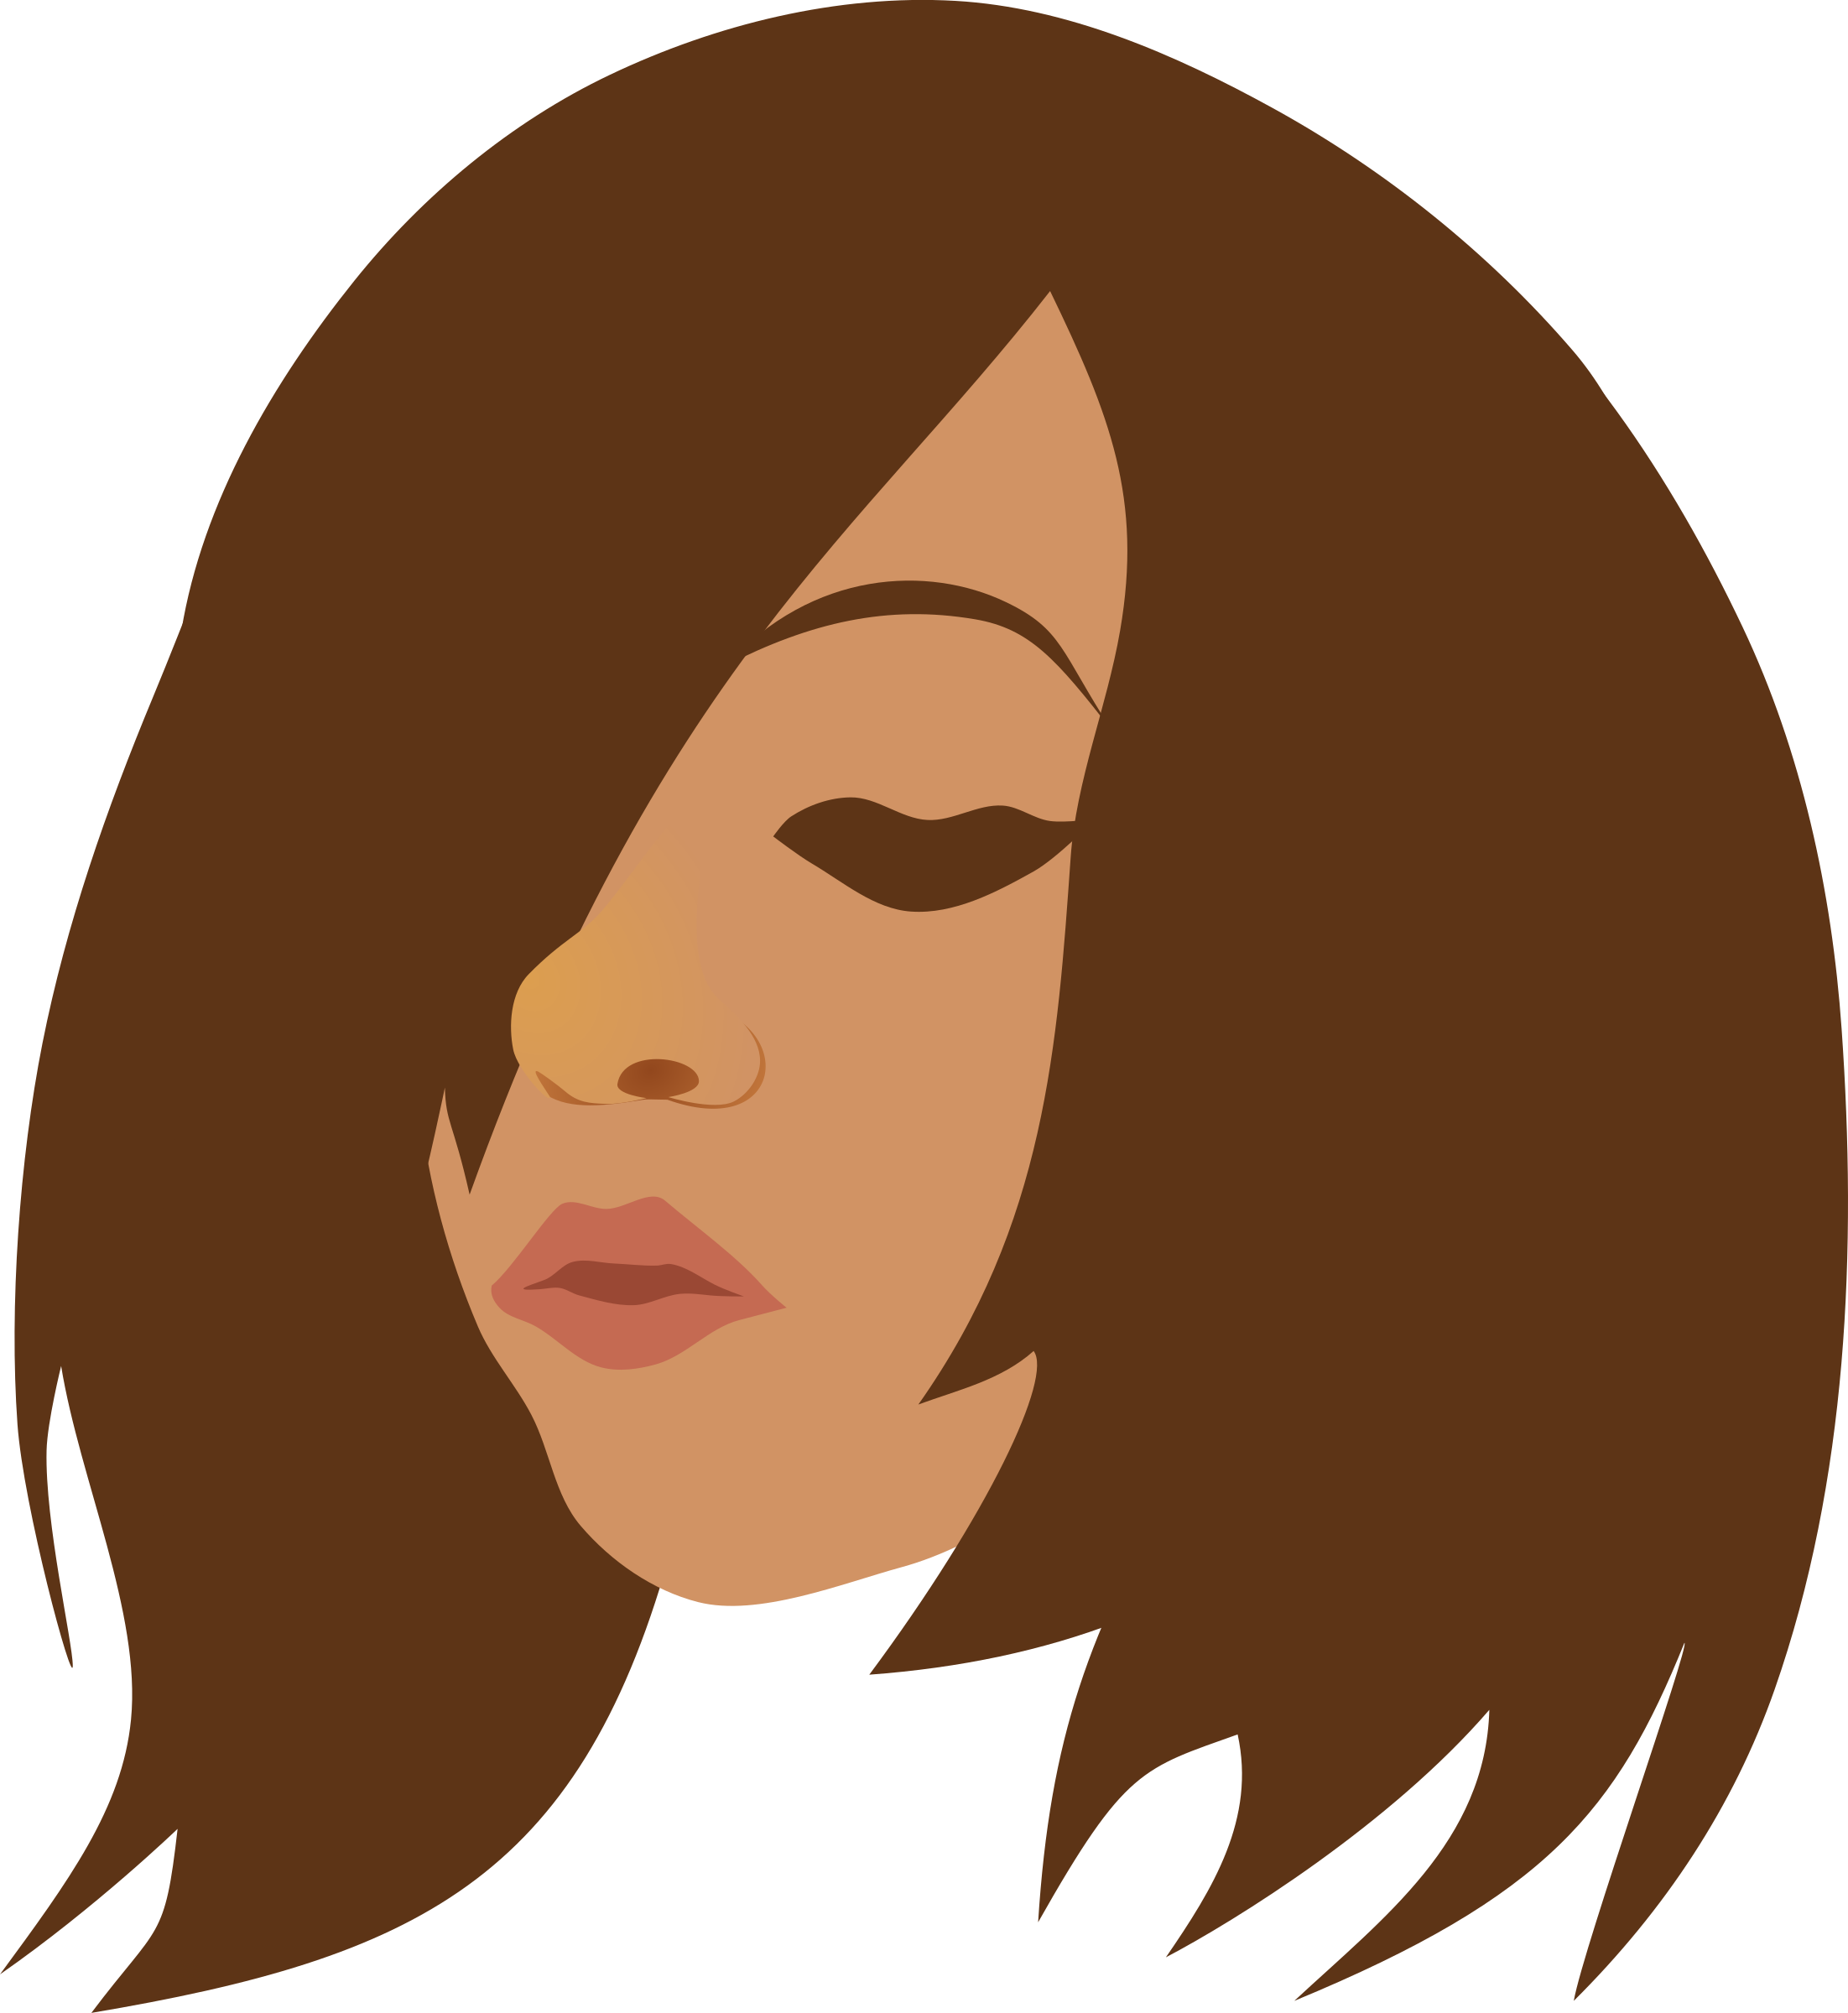 jpg transparent library Transparent free on dumielauxepices. Hair clipart hair emo